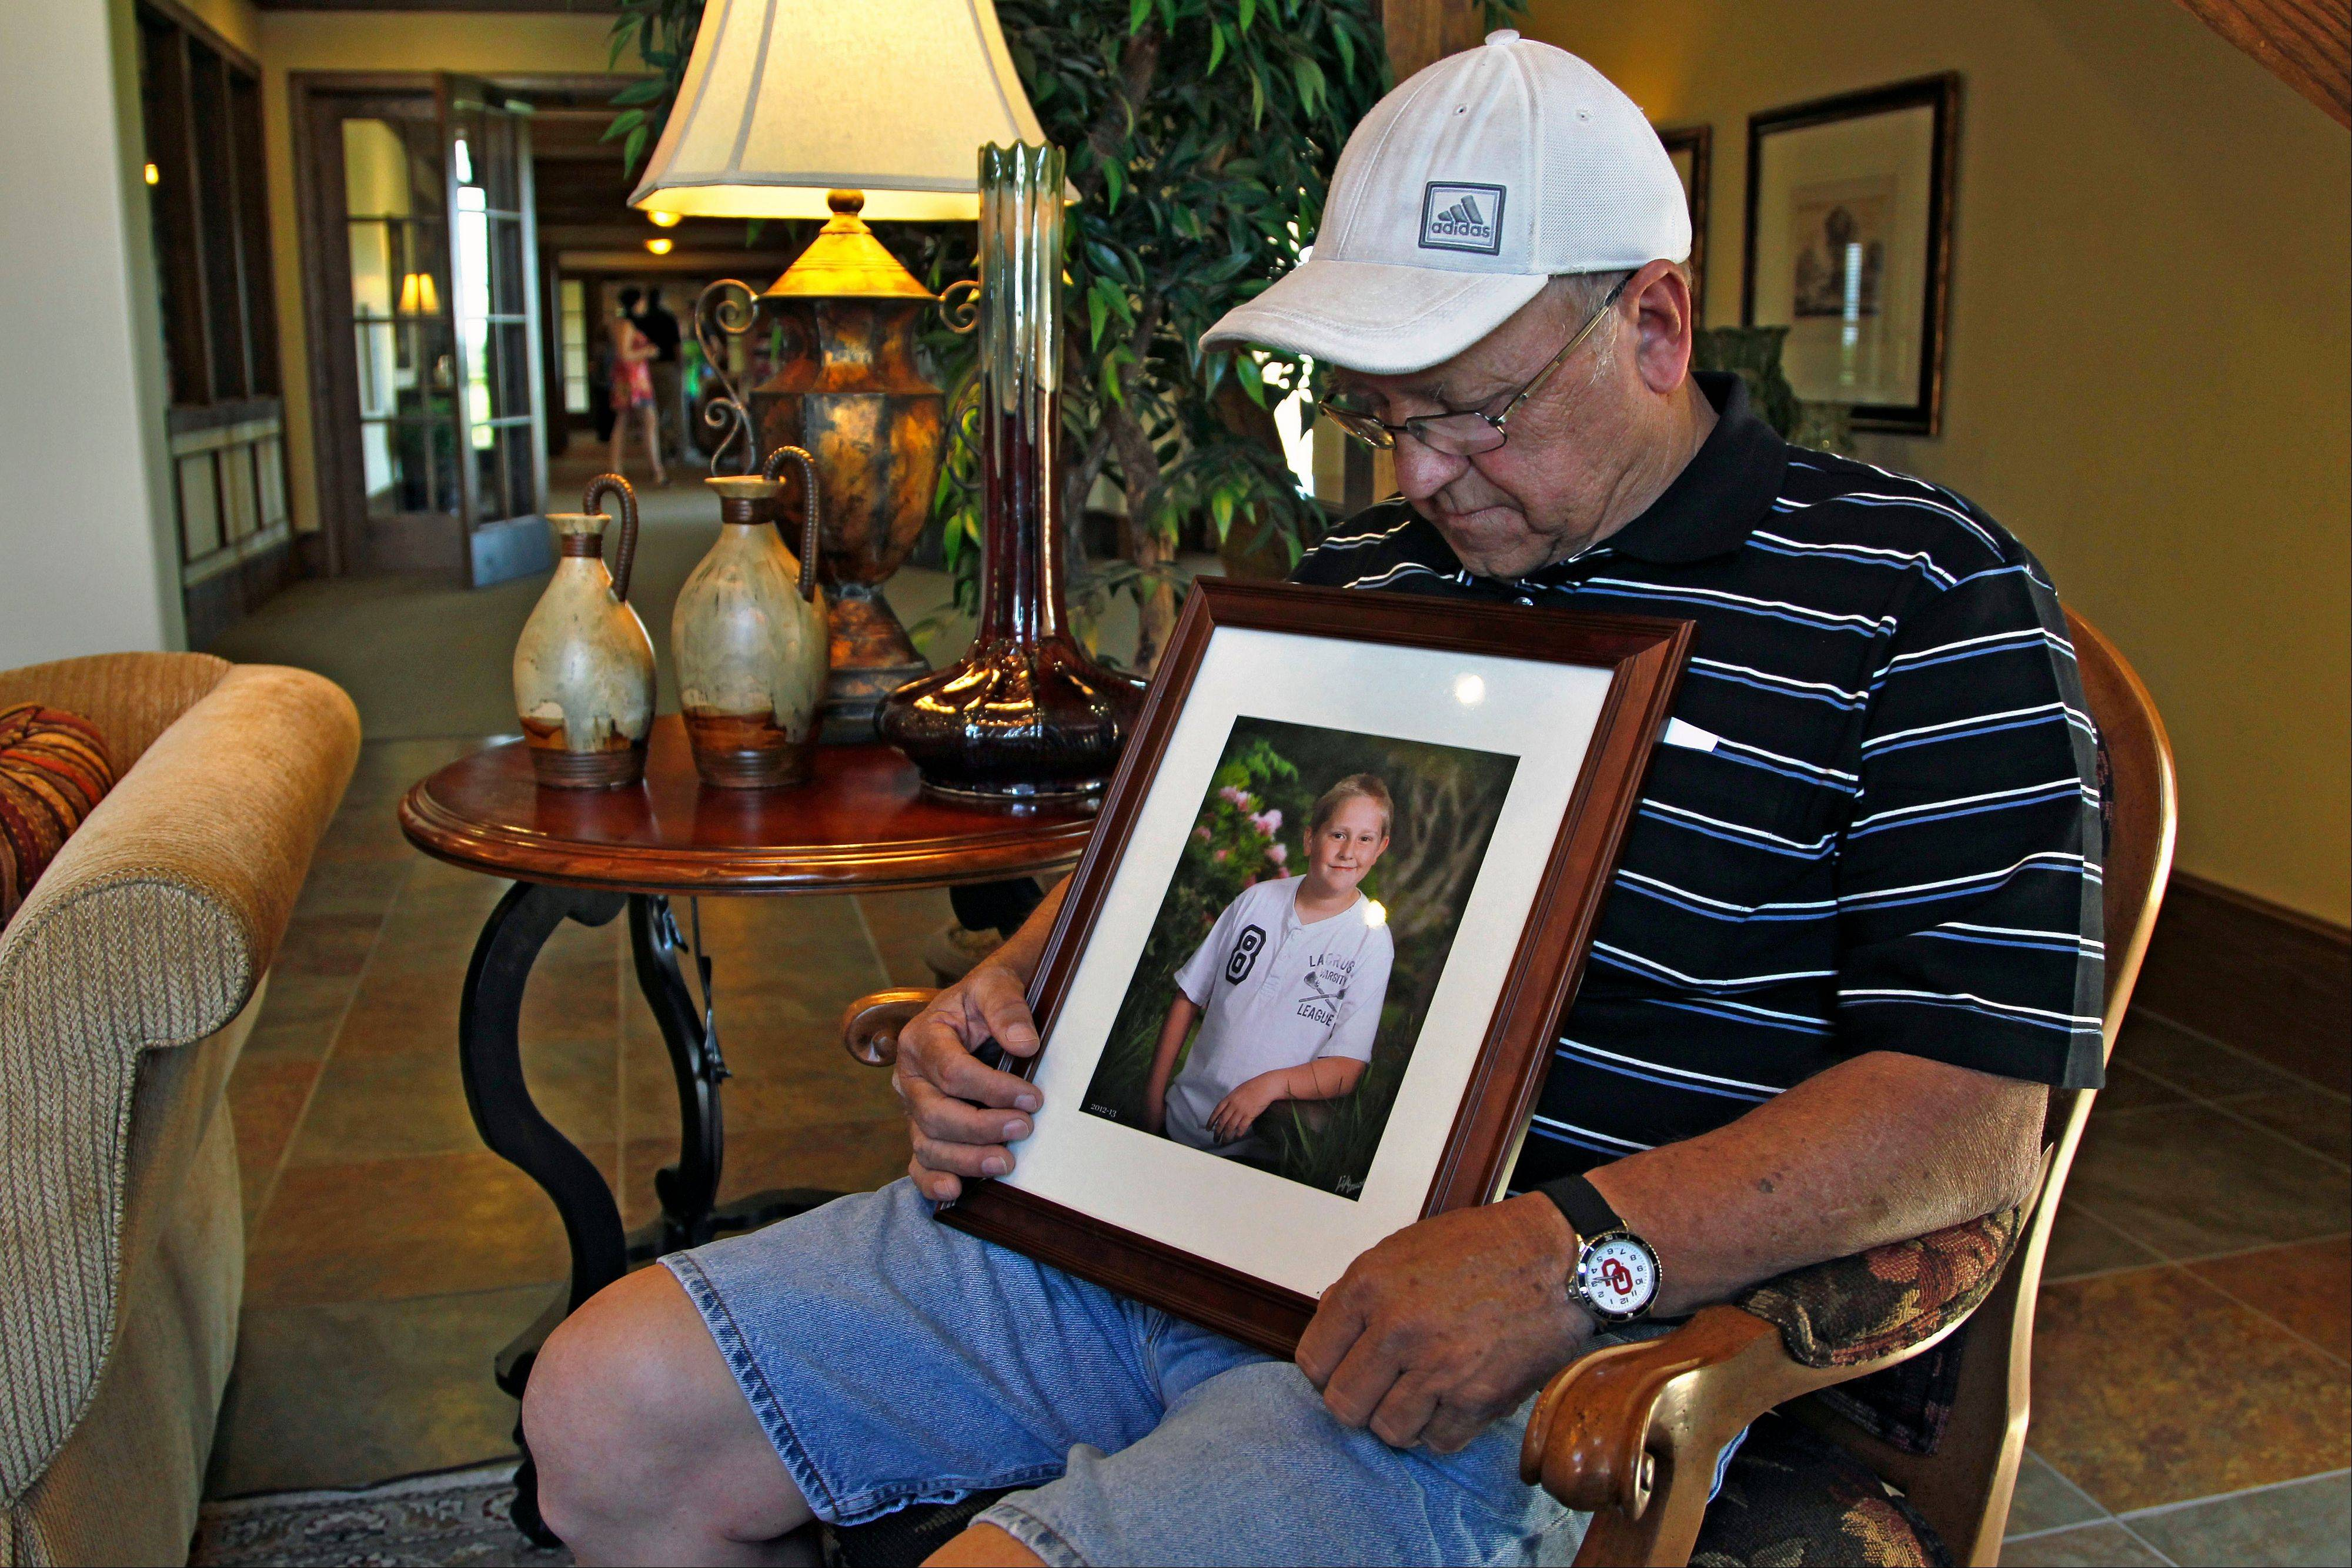 Marvin Dixon, the grandfather of 8-year-old tornado victim Kyle Davis, glances down at a photo of his grandson in the lobby of a funeral home where his grandson awaits burial, in Oklahoma City, Wednesday, May 22, 2013. Nicknamed �The Wall,� Davis loved soccer and going to the Monster Truck exhibitions at the fairgrounds with his grandfather.